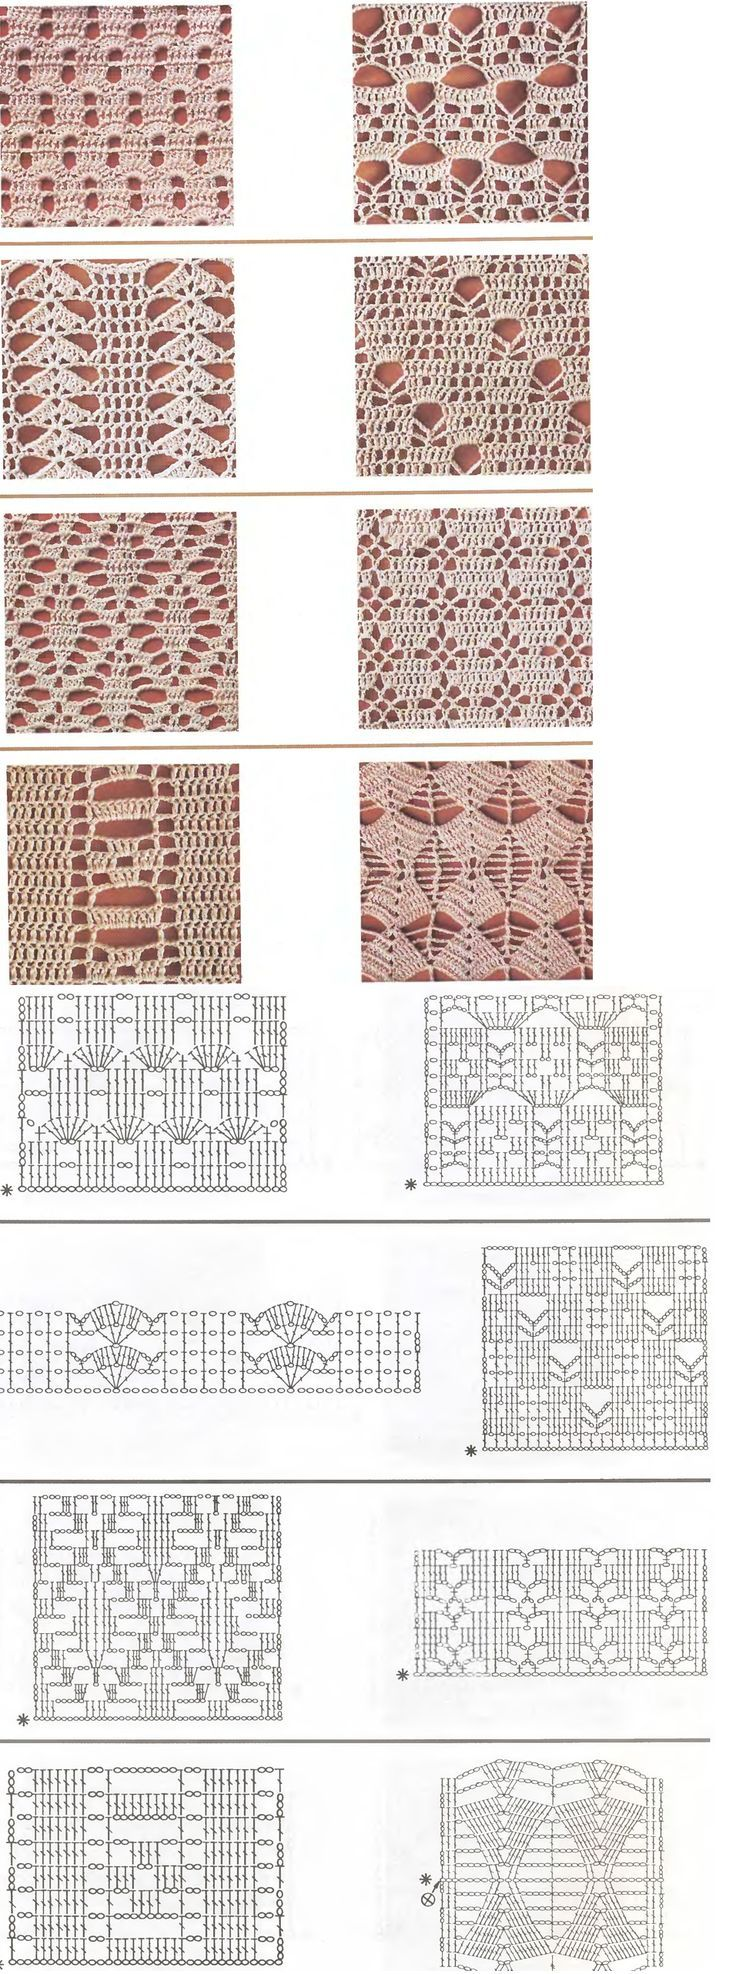 50 best images about crochet on pinterest stitches patterns and crochet diagramsi really need to learn how to read diagrams these might give me some practice tests many stitch patterns pooptronica